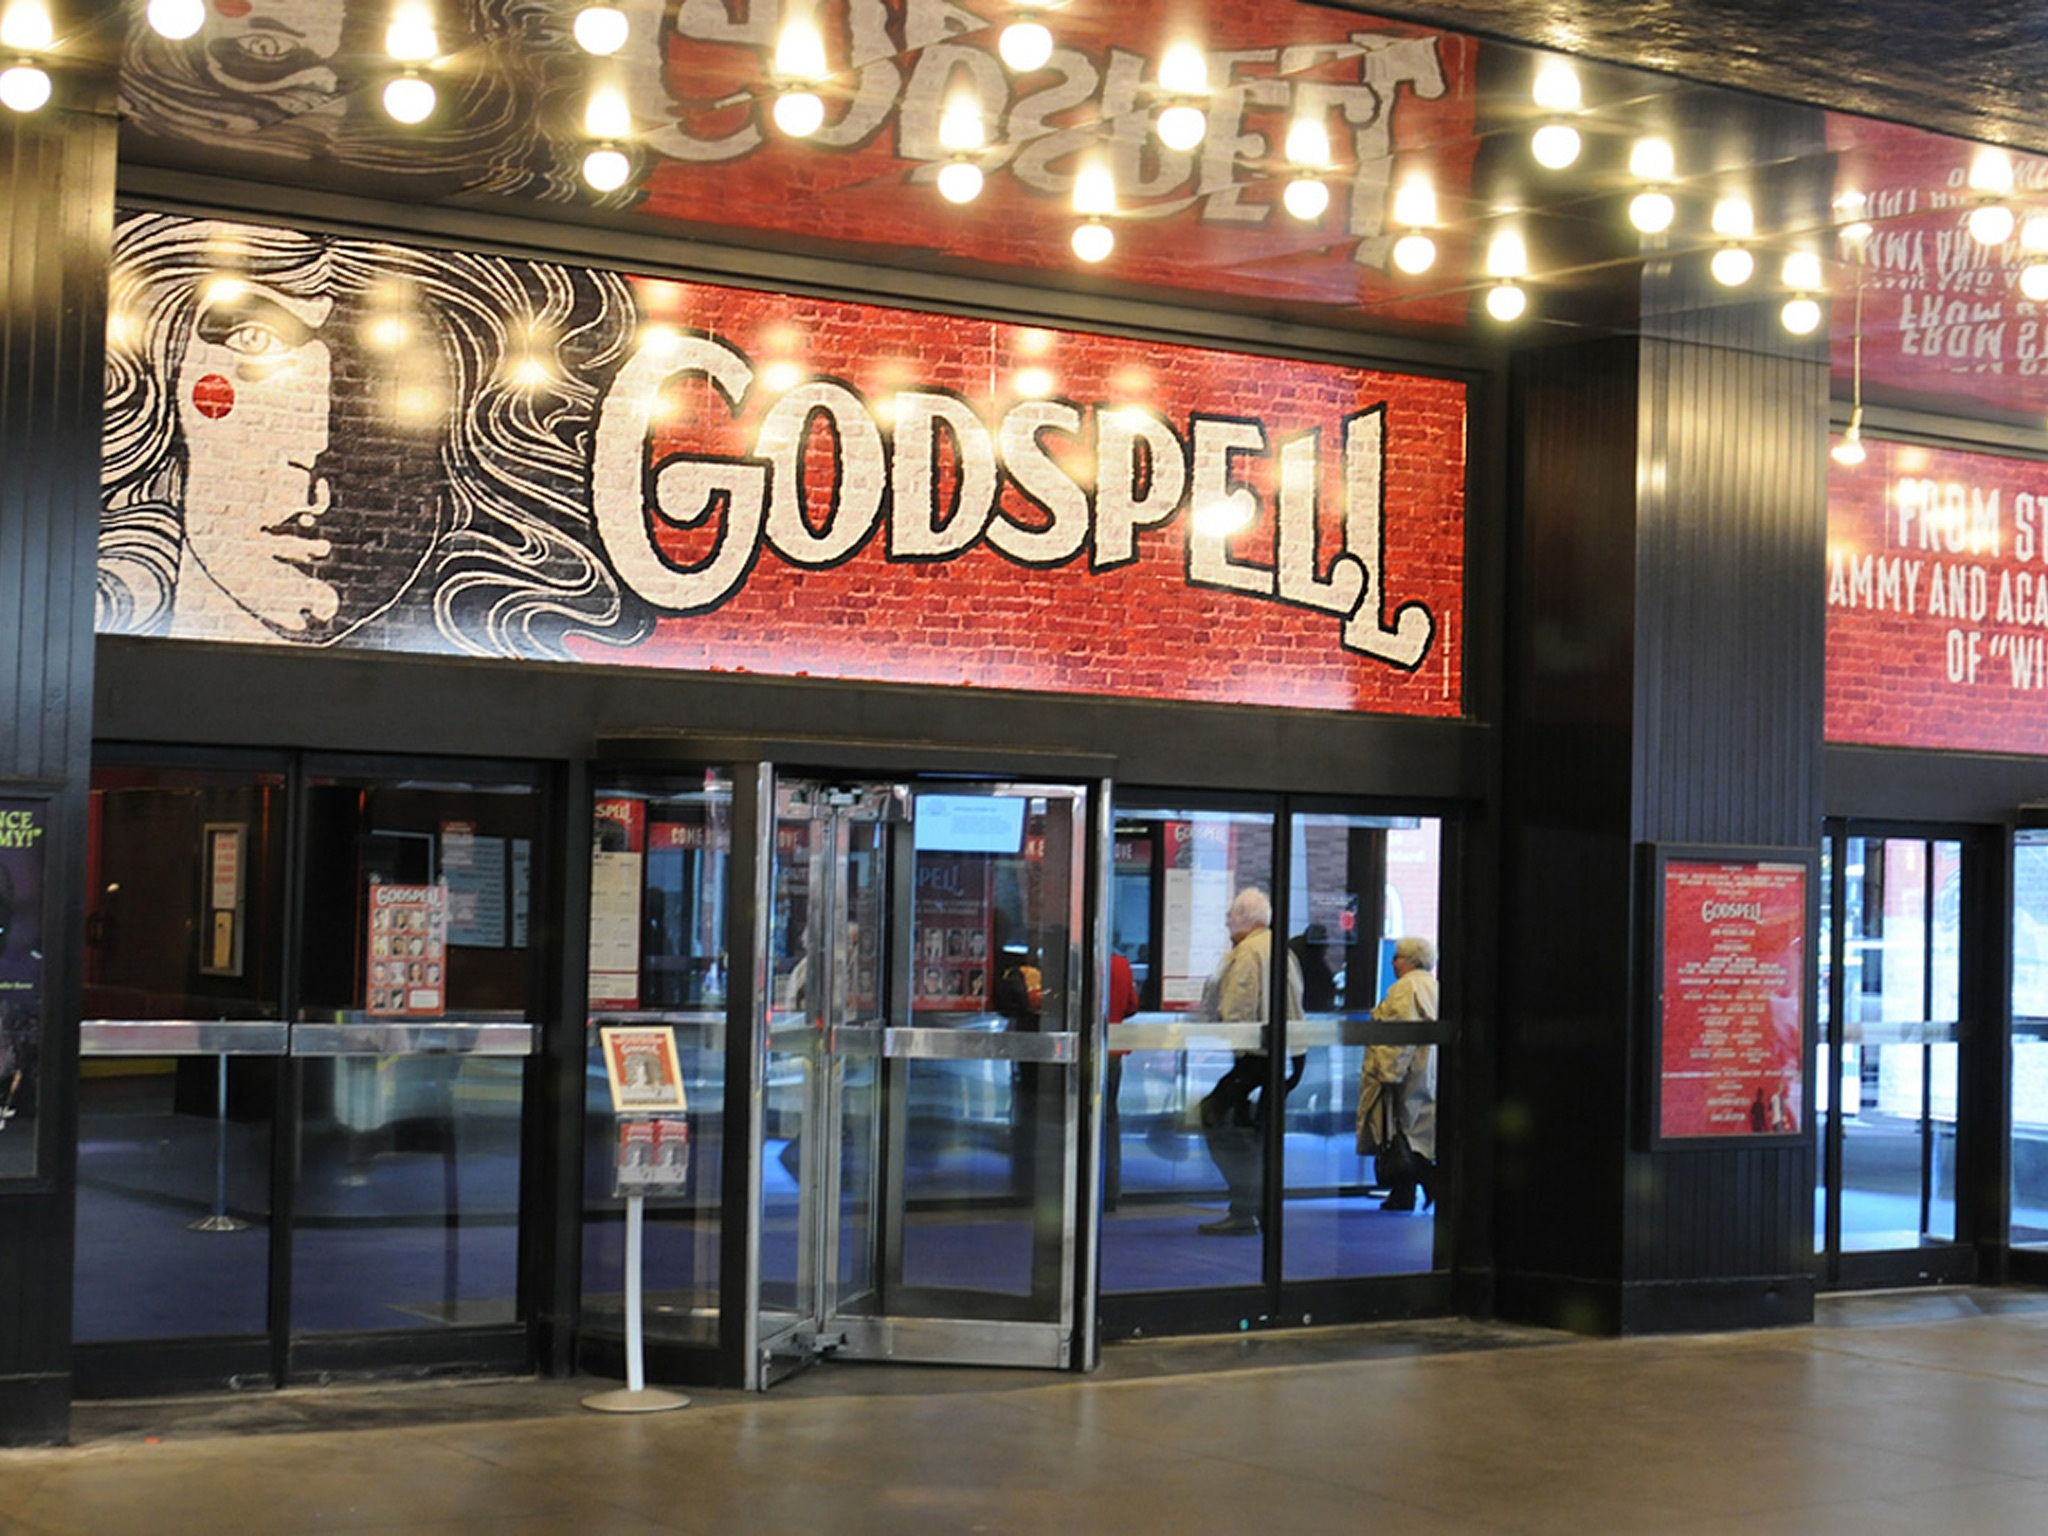 Godspell on Broadway Marquee at the Circle In The Square Theatre